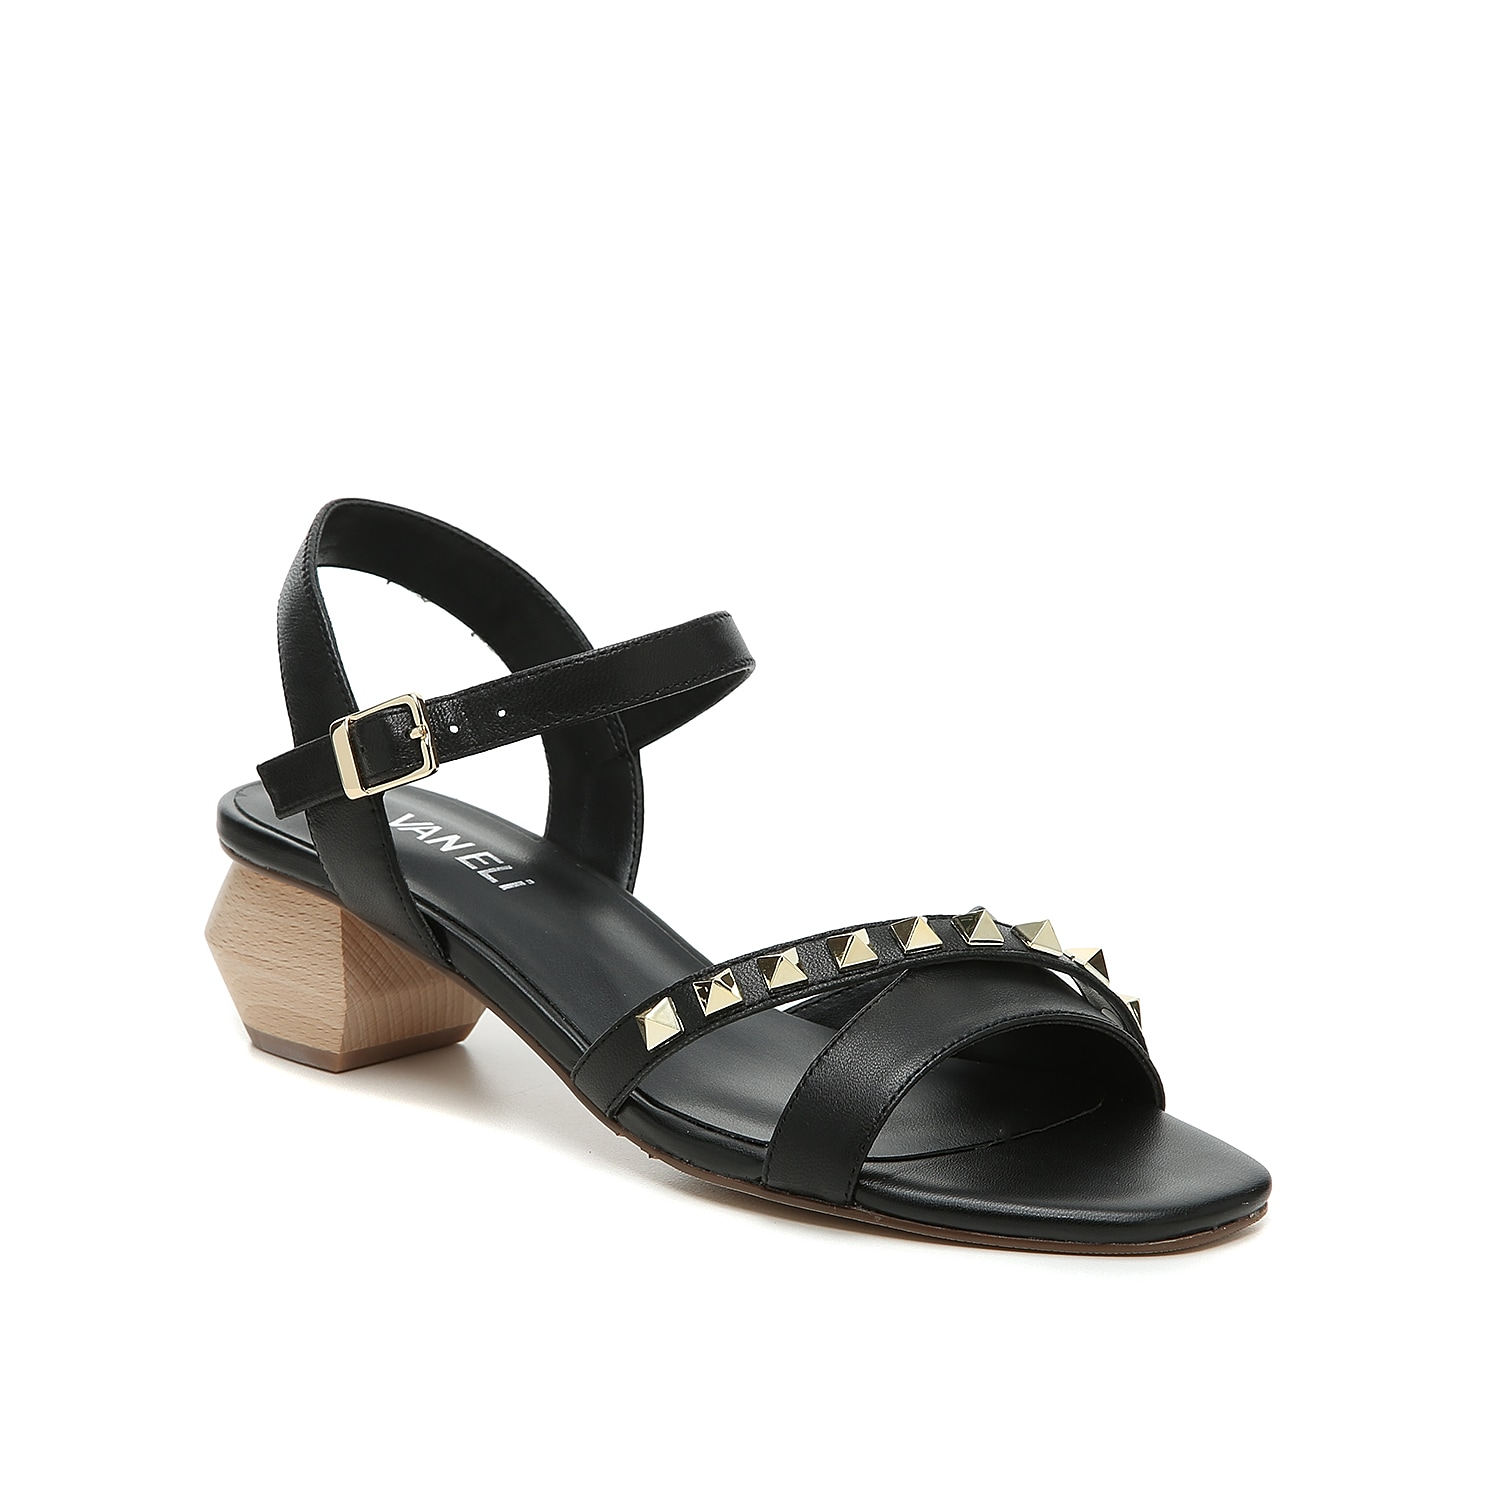 Show off your fashion-forward looks with the Cidin sandal from VANELi. This silhouette is fashioned with a leather upper, edgy stud accent, and a geometric heel for added interest!